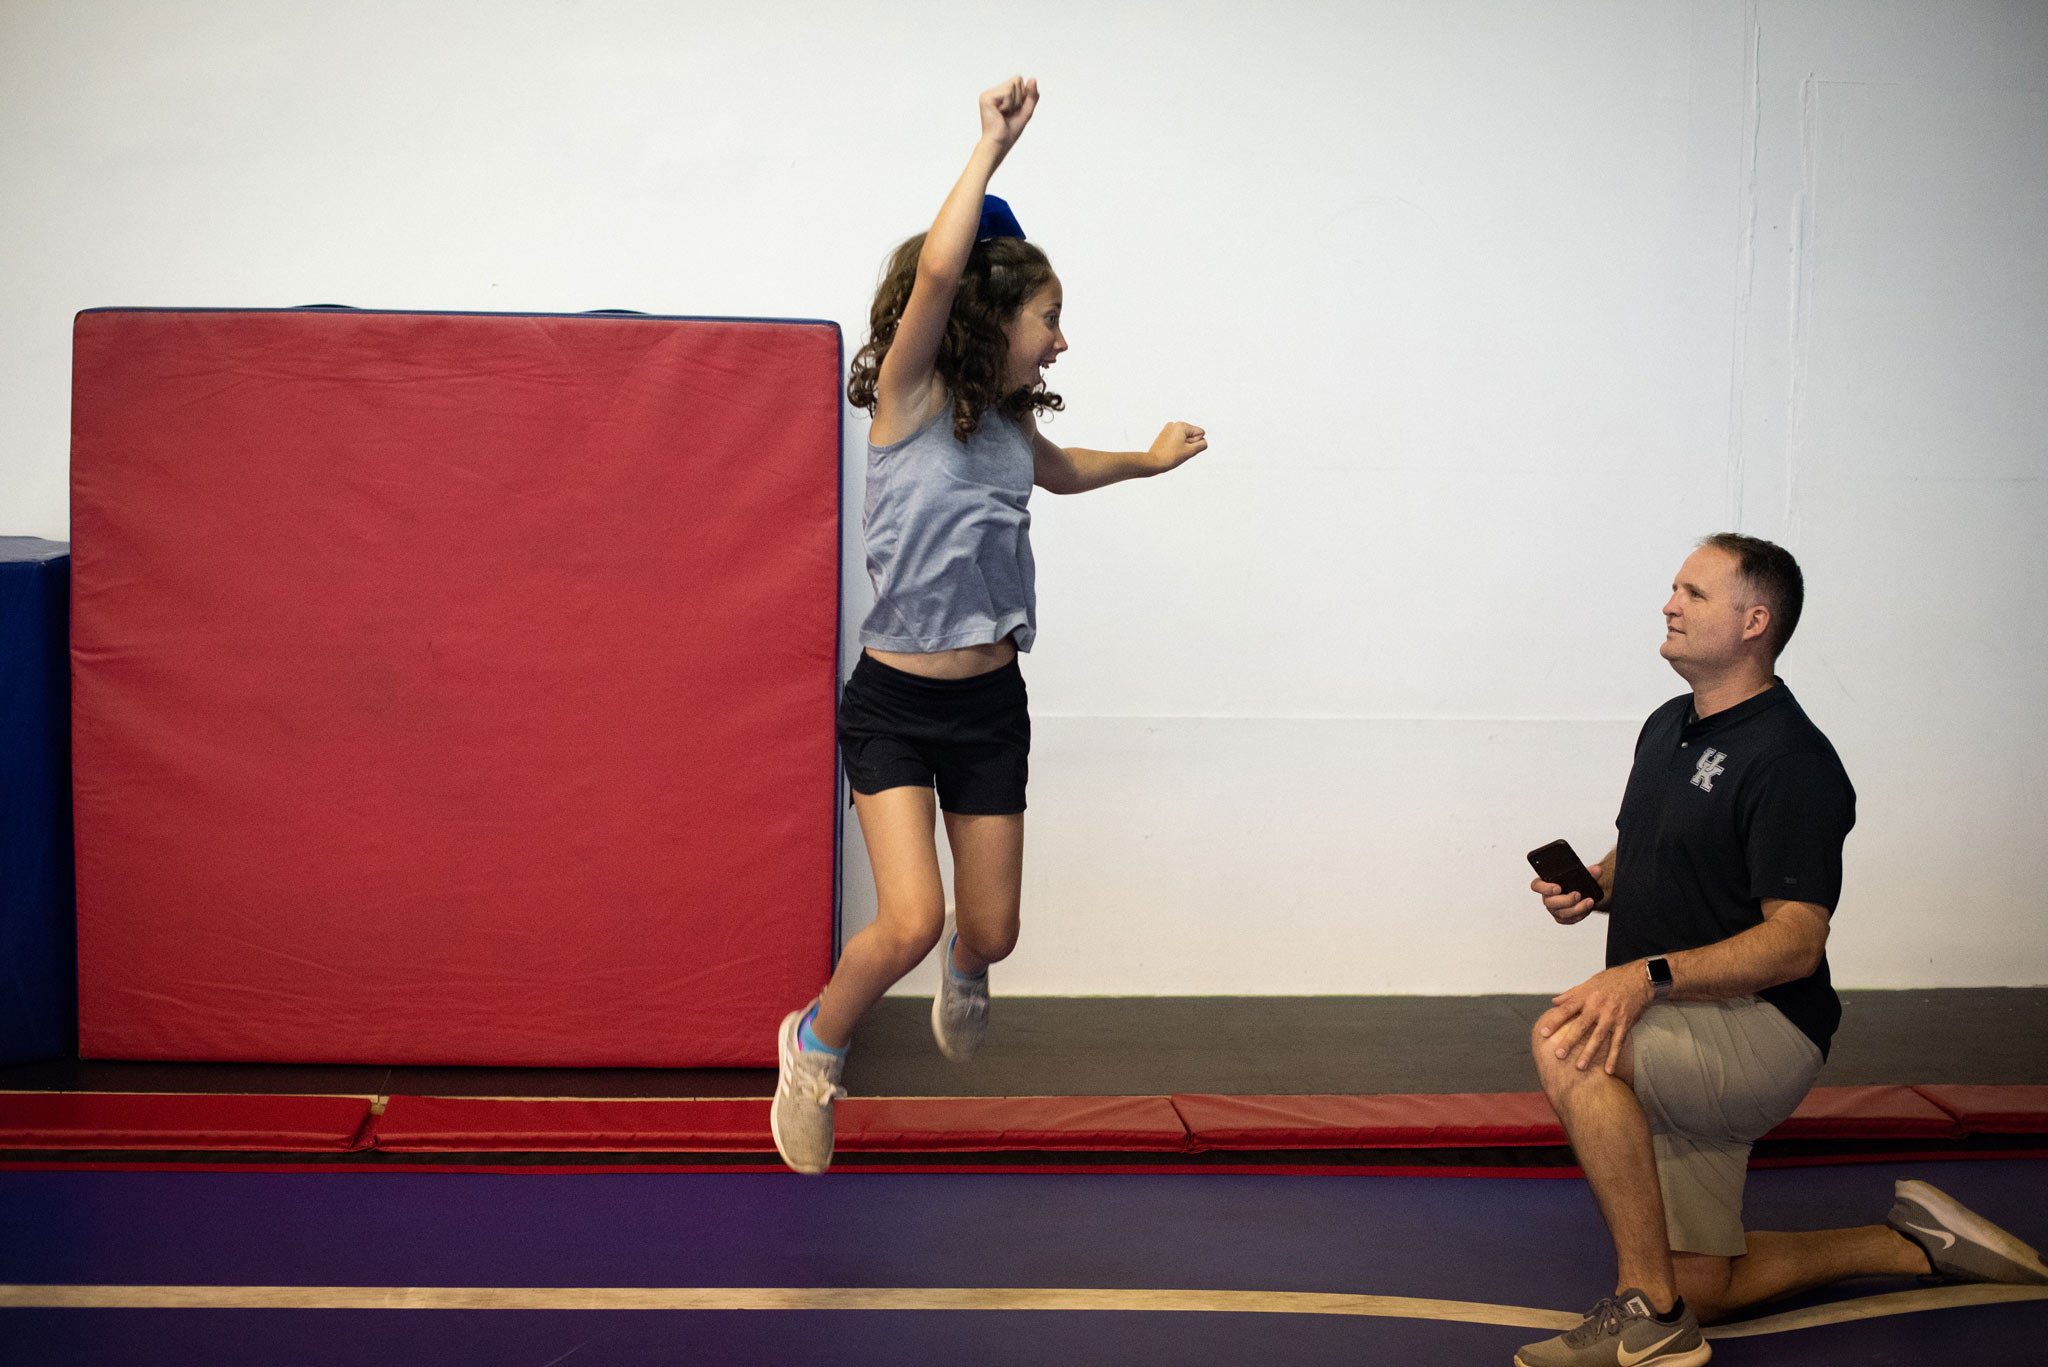 Gracie jumps enthusiastically on a gymnastics mat while her father, a middle aged man in a black polo shirt, watches her.